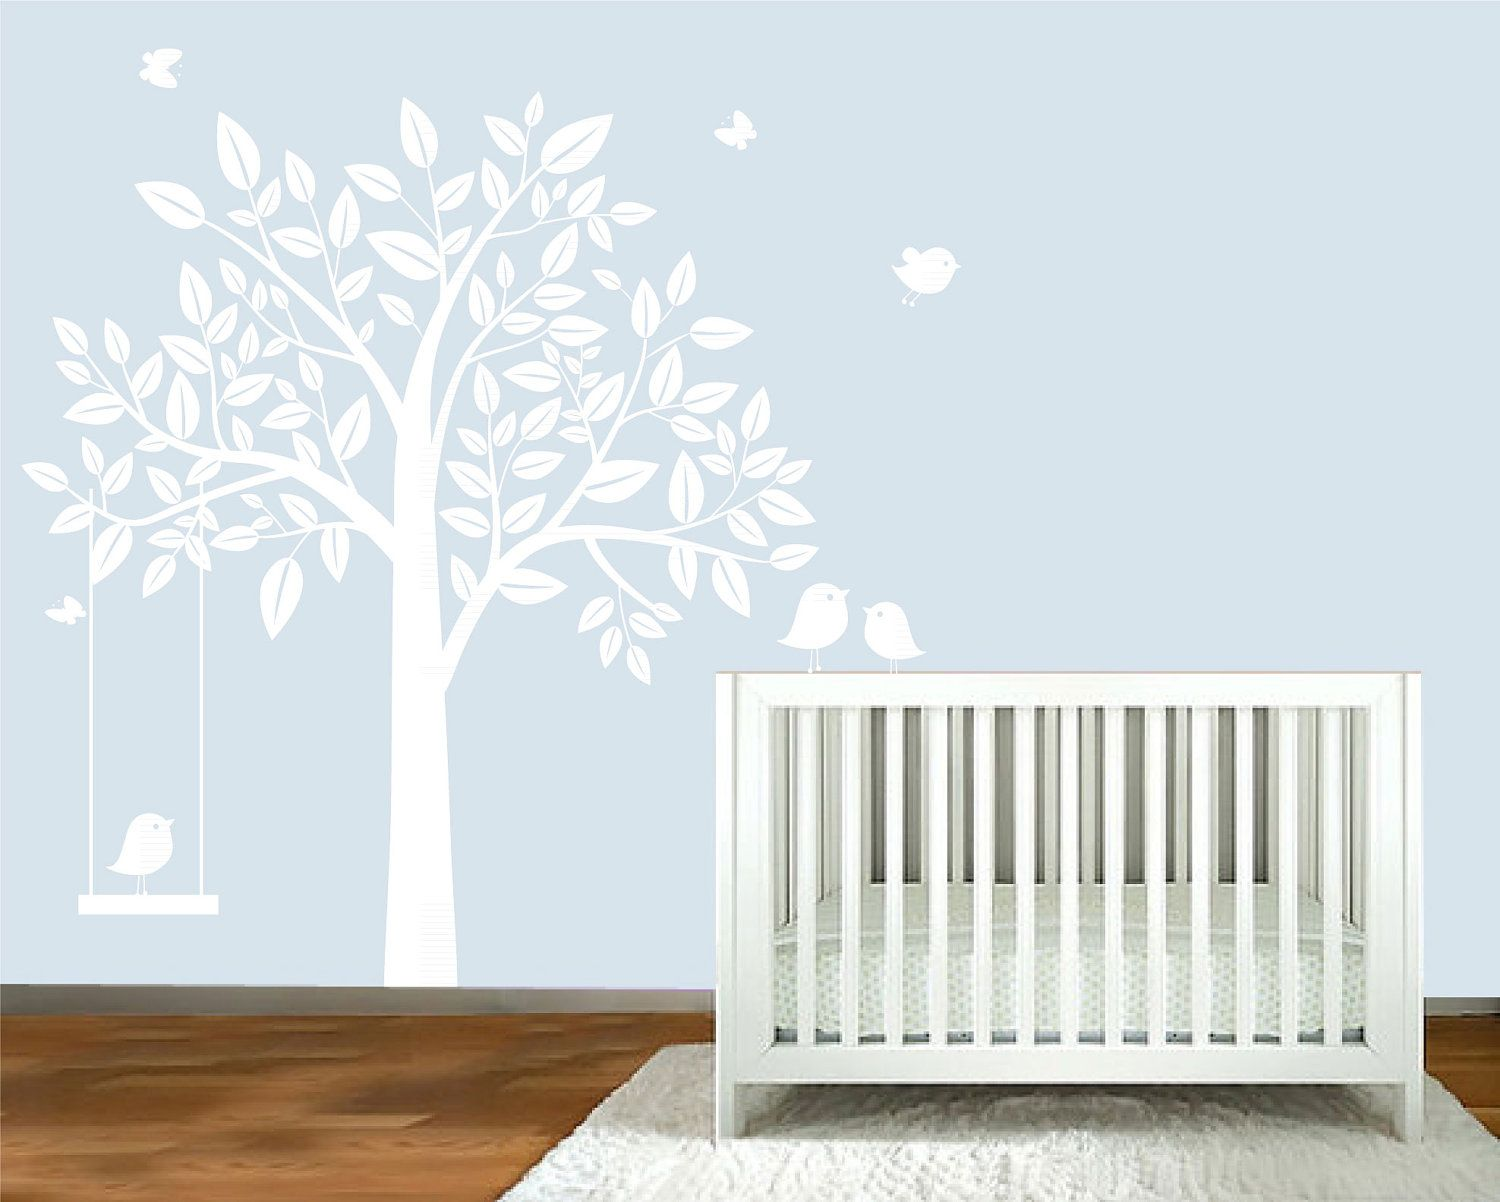 Tree wall decals large personalized family tree decal vinyl wall decal - Baby Boy Nursery Decor Nursery Tree Decal